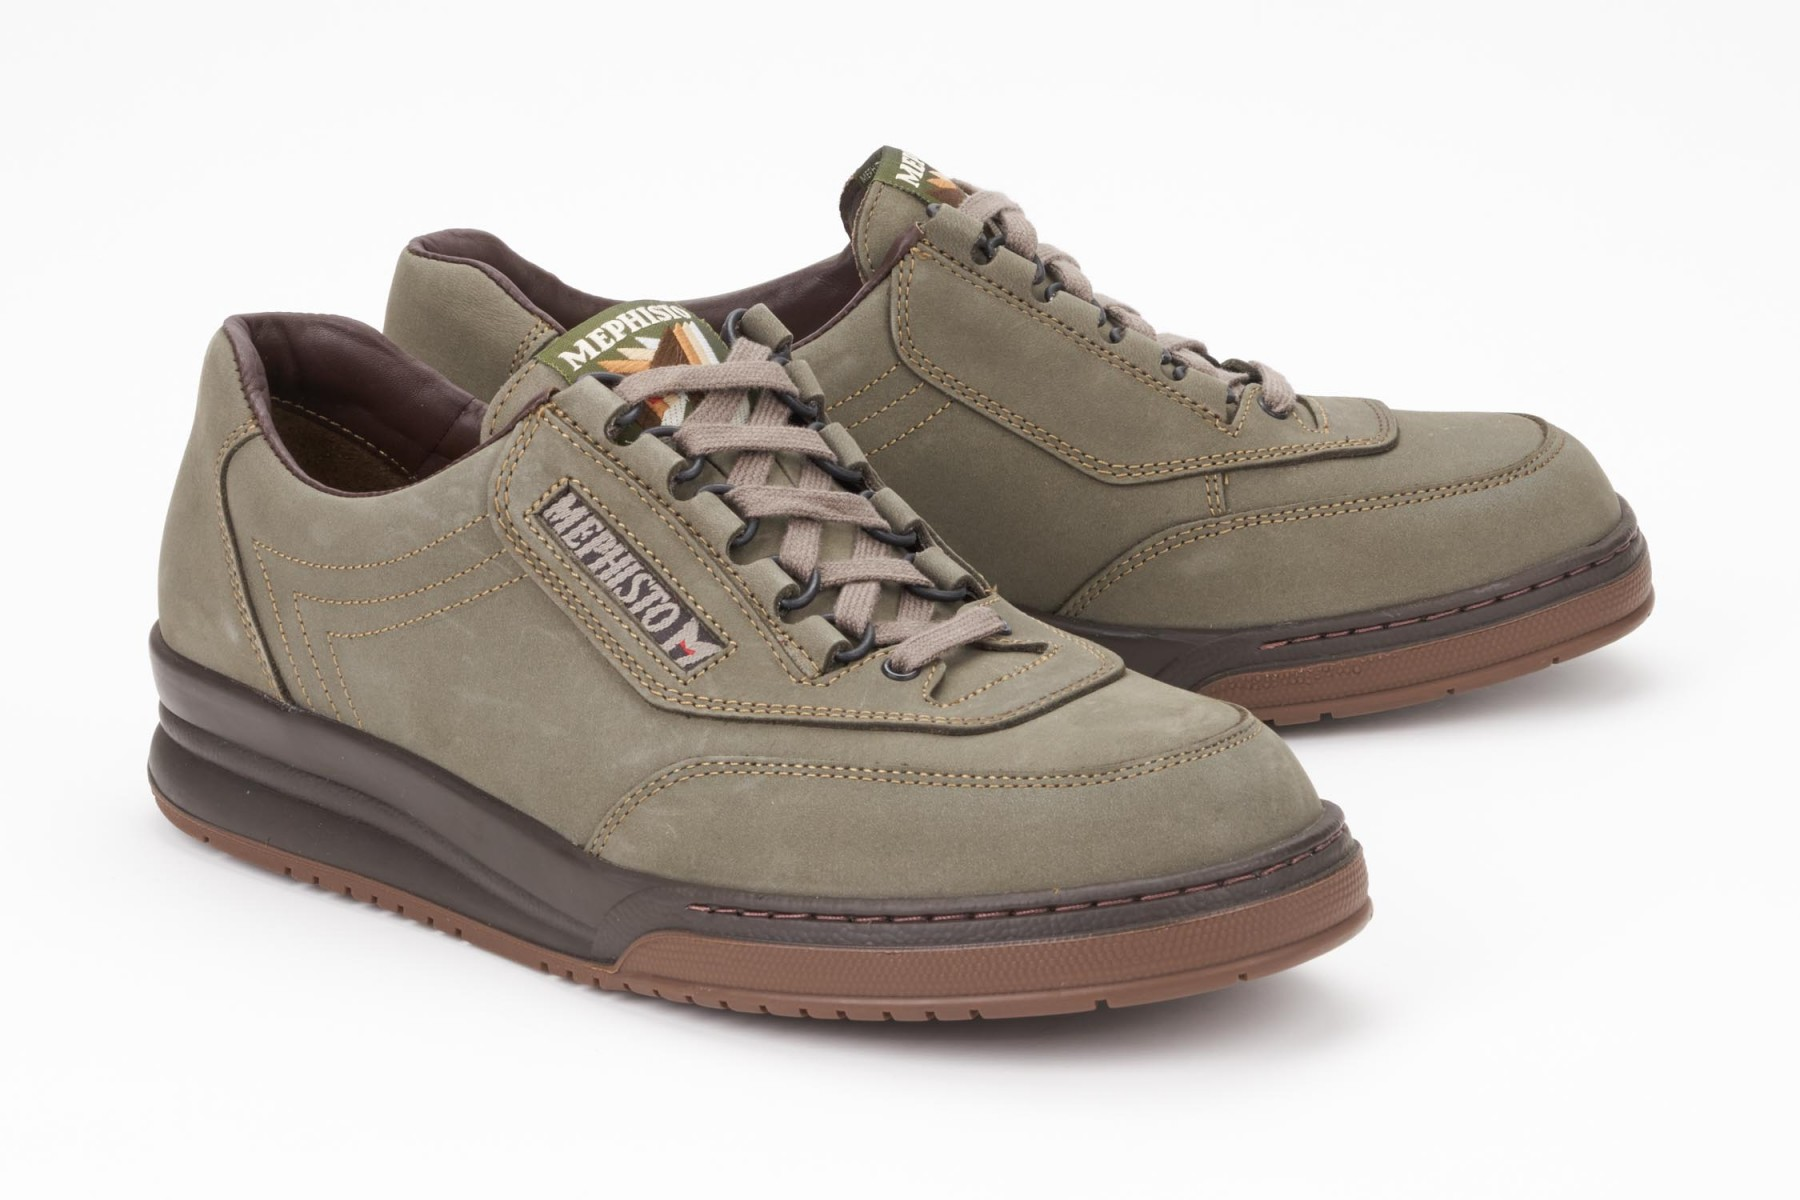 02609fe3c3 MATCH Oxford - MEPHISTO Men's Oxfords | Nubuck, birch